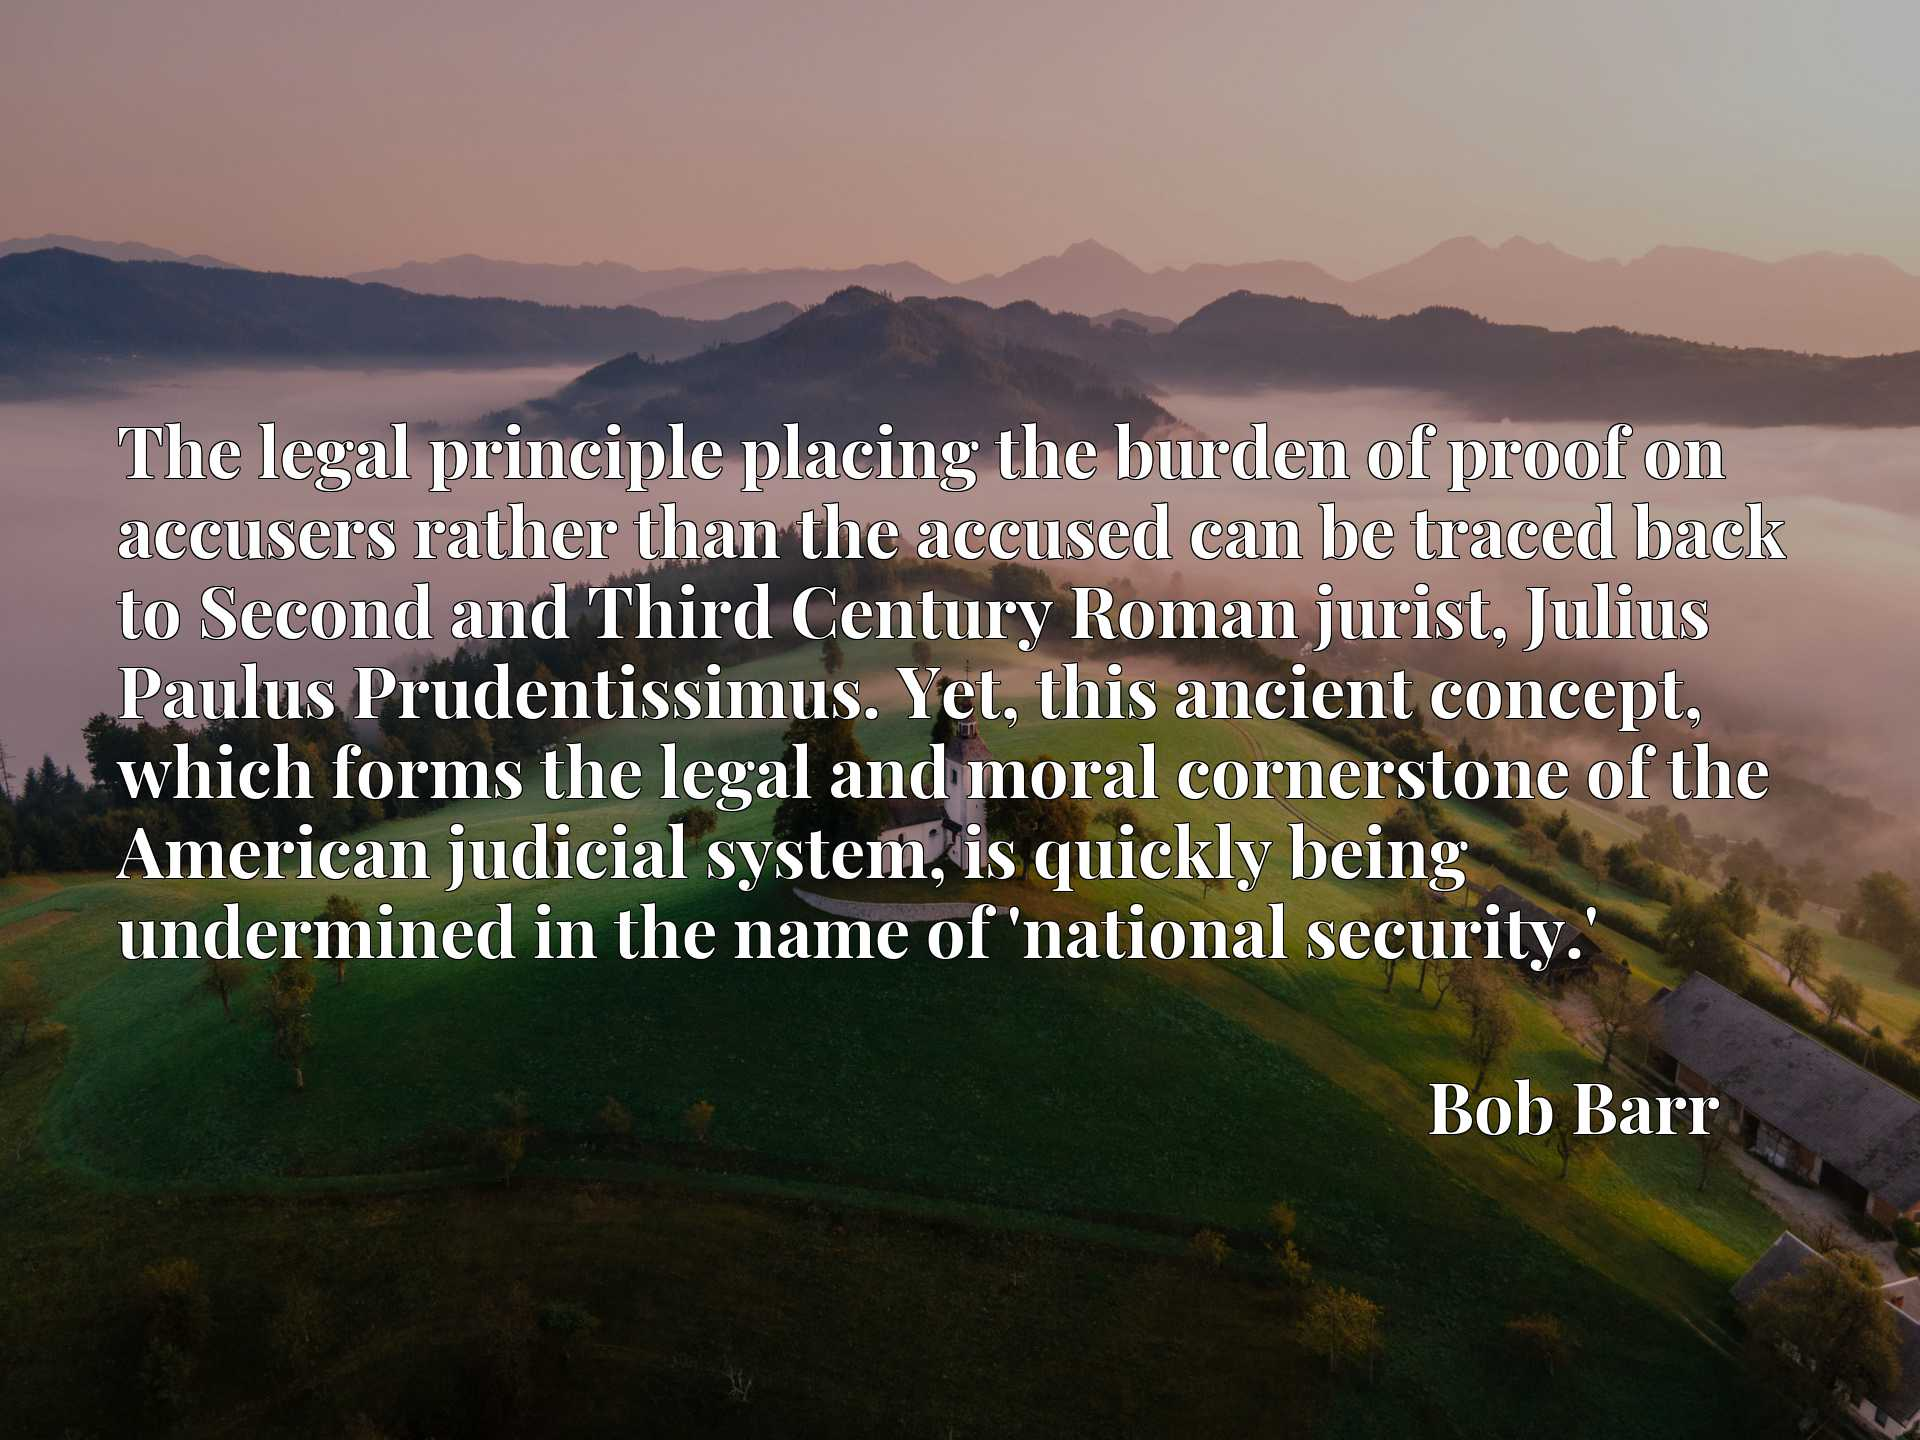 Quote Picture :The legal principle placing the burden of proof on accusers rather than the accused can be traced back to Second and Third Century Roman jurist, Julius Paulus Prudentissimus. Yet, this ancient concept, which forms the legal and moral cornerstone of the American judicial system, is quickly being undermined in the name of 'national security.'